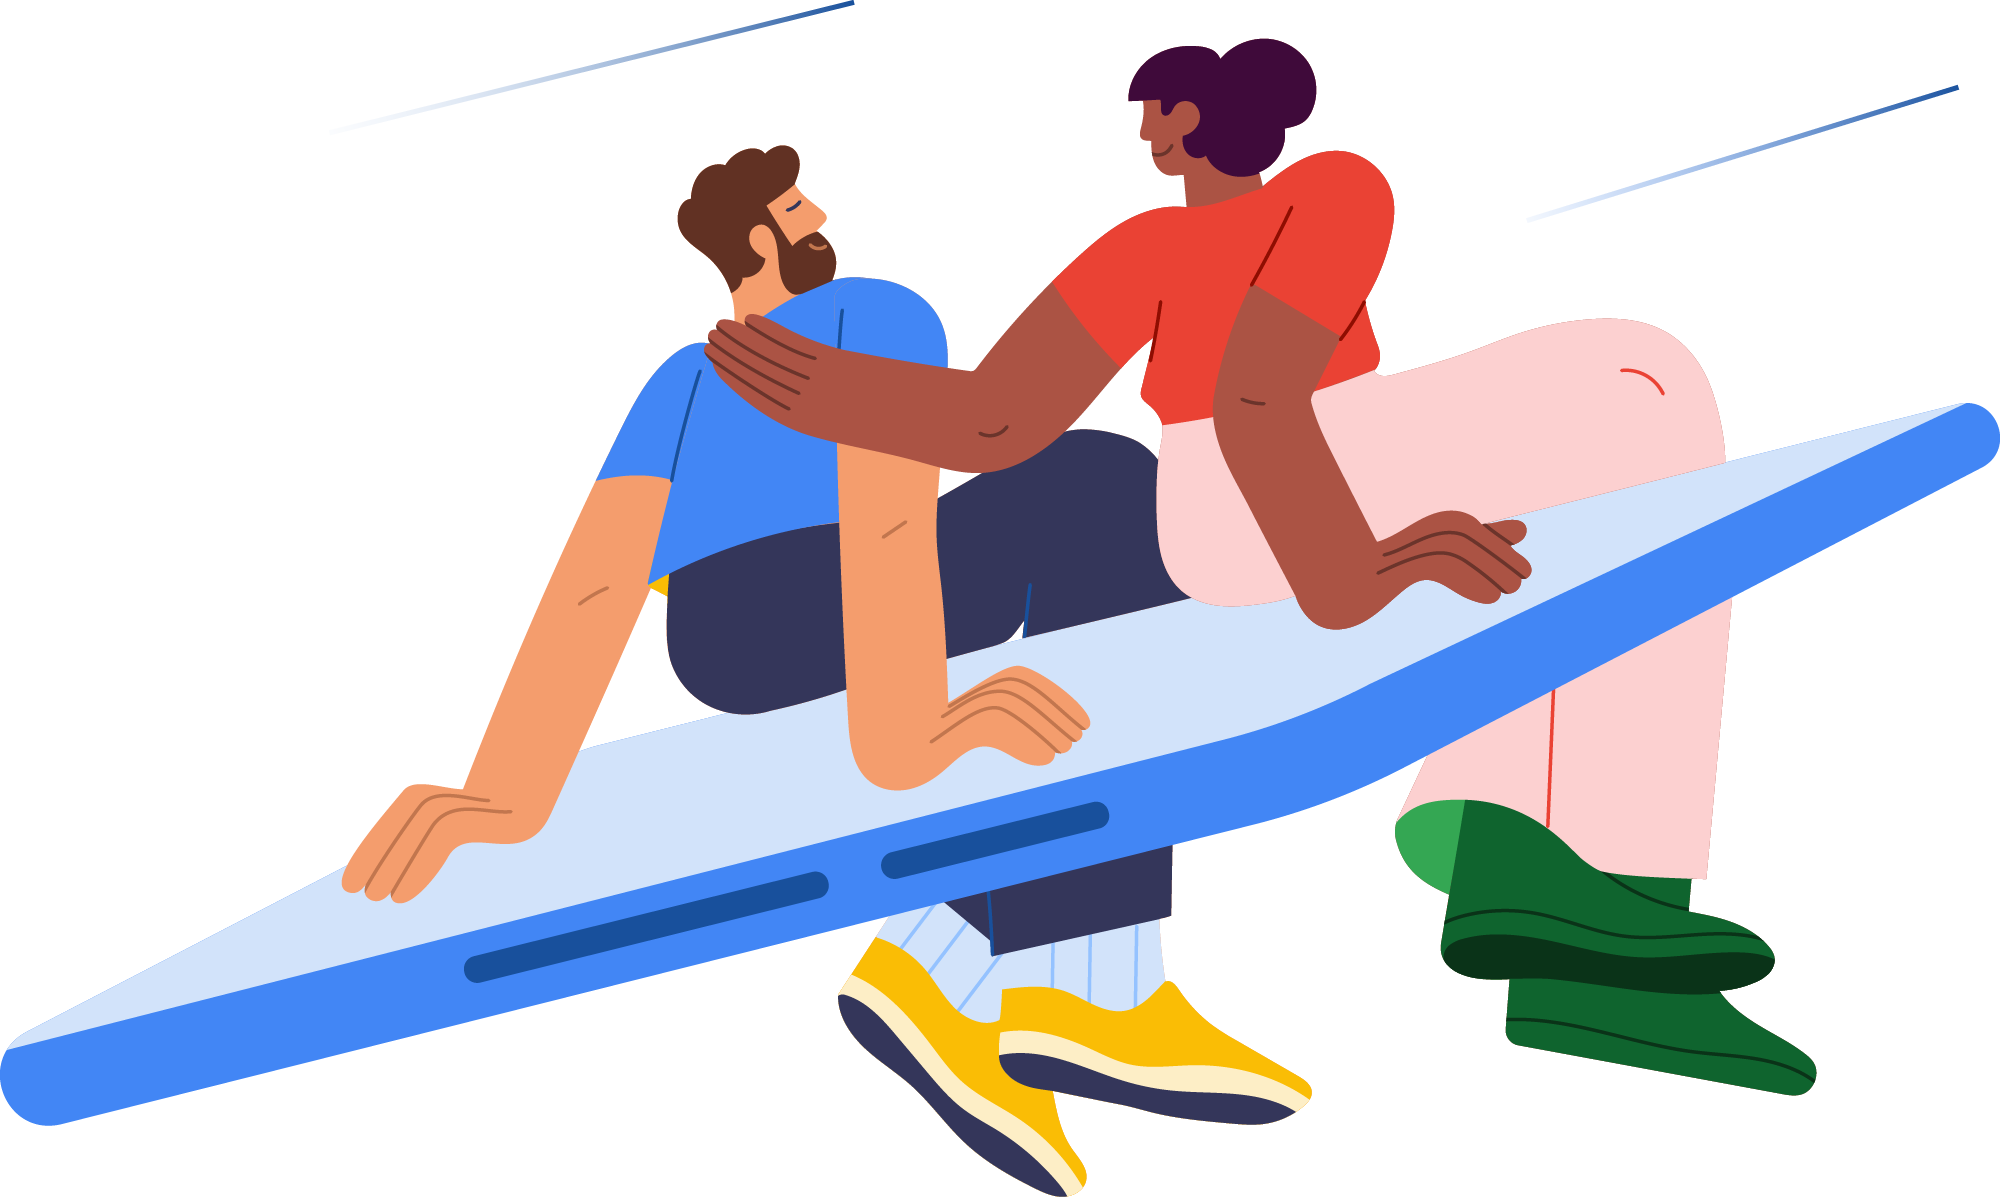 Two people sitting on a flying phone